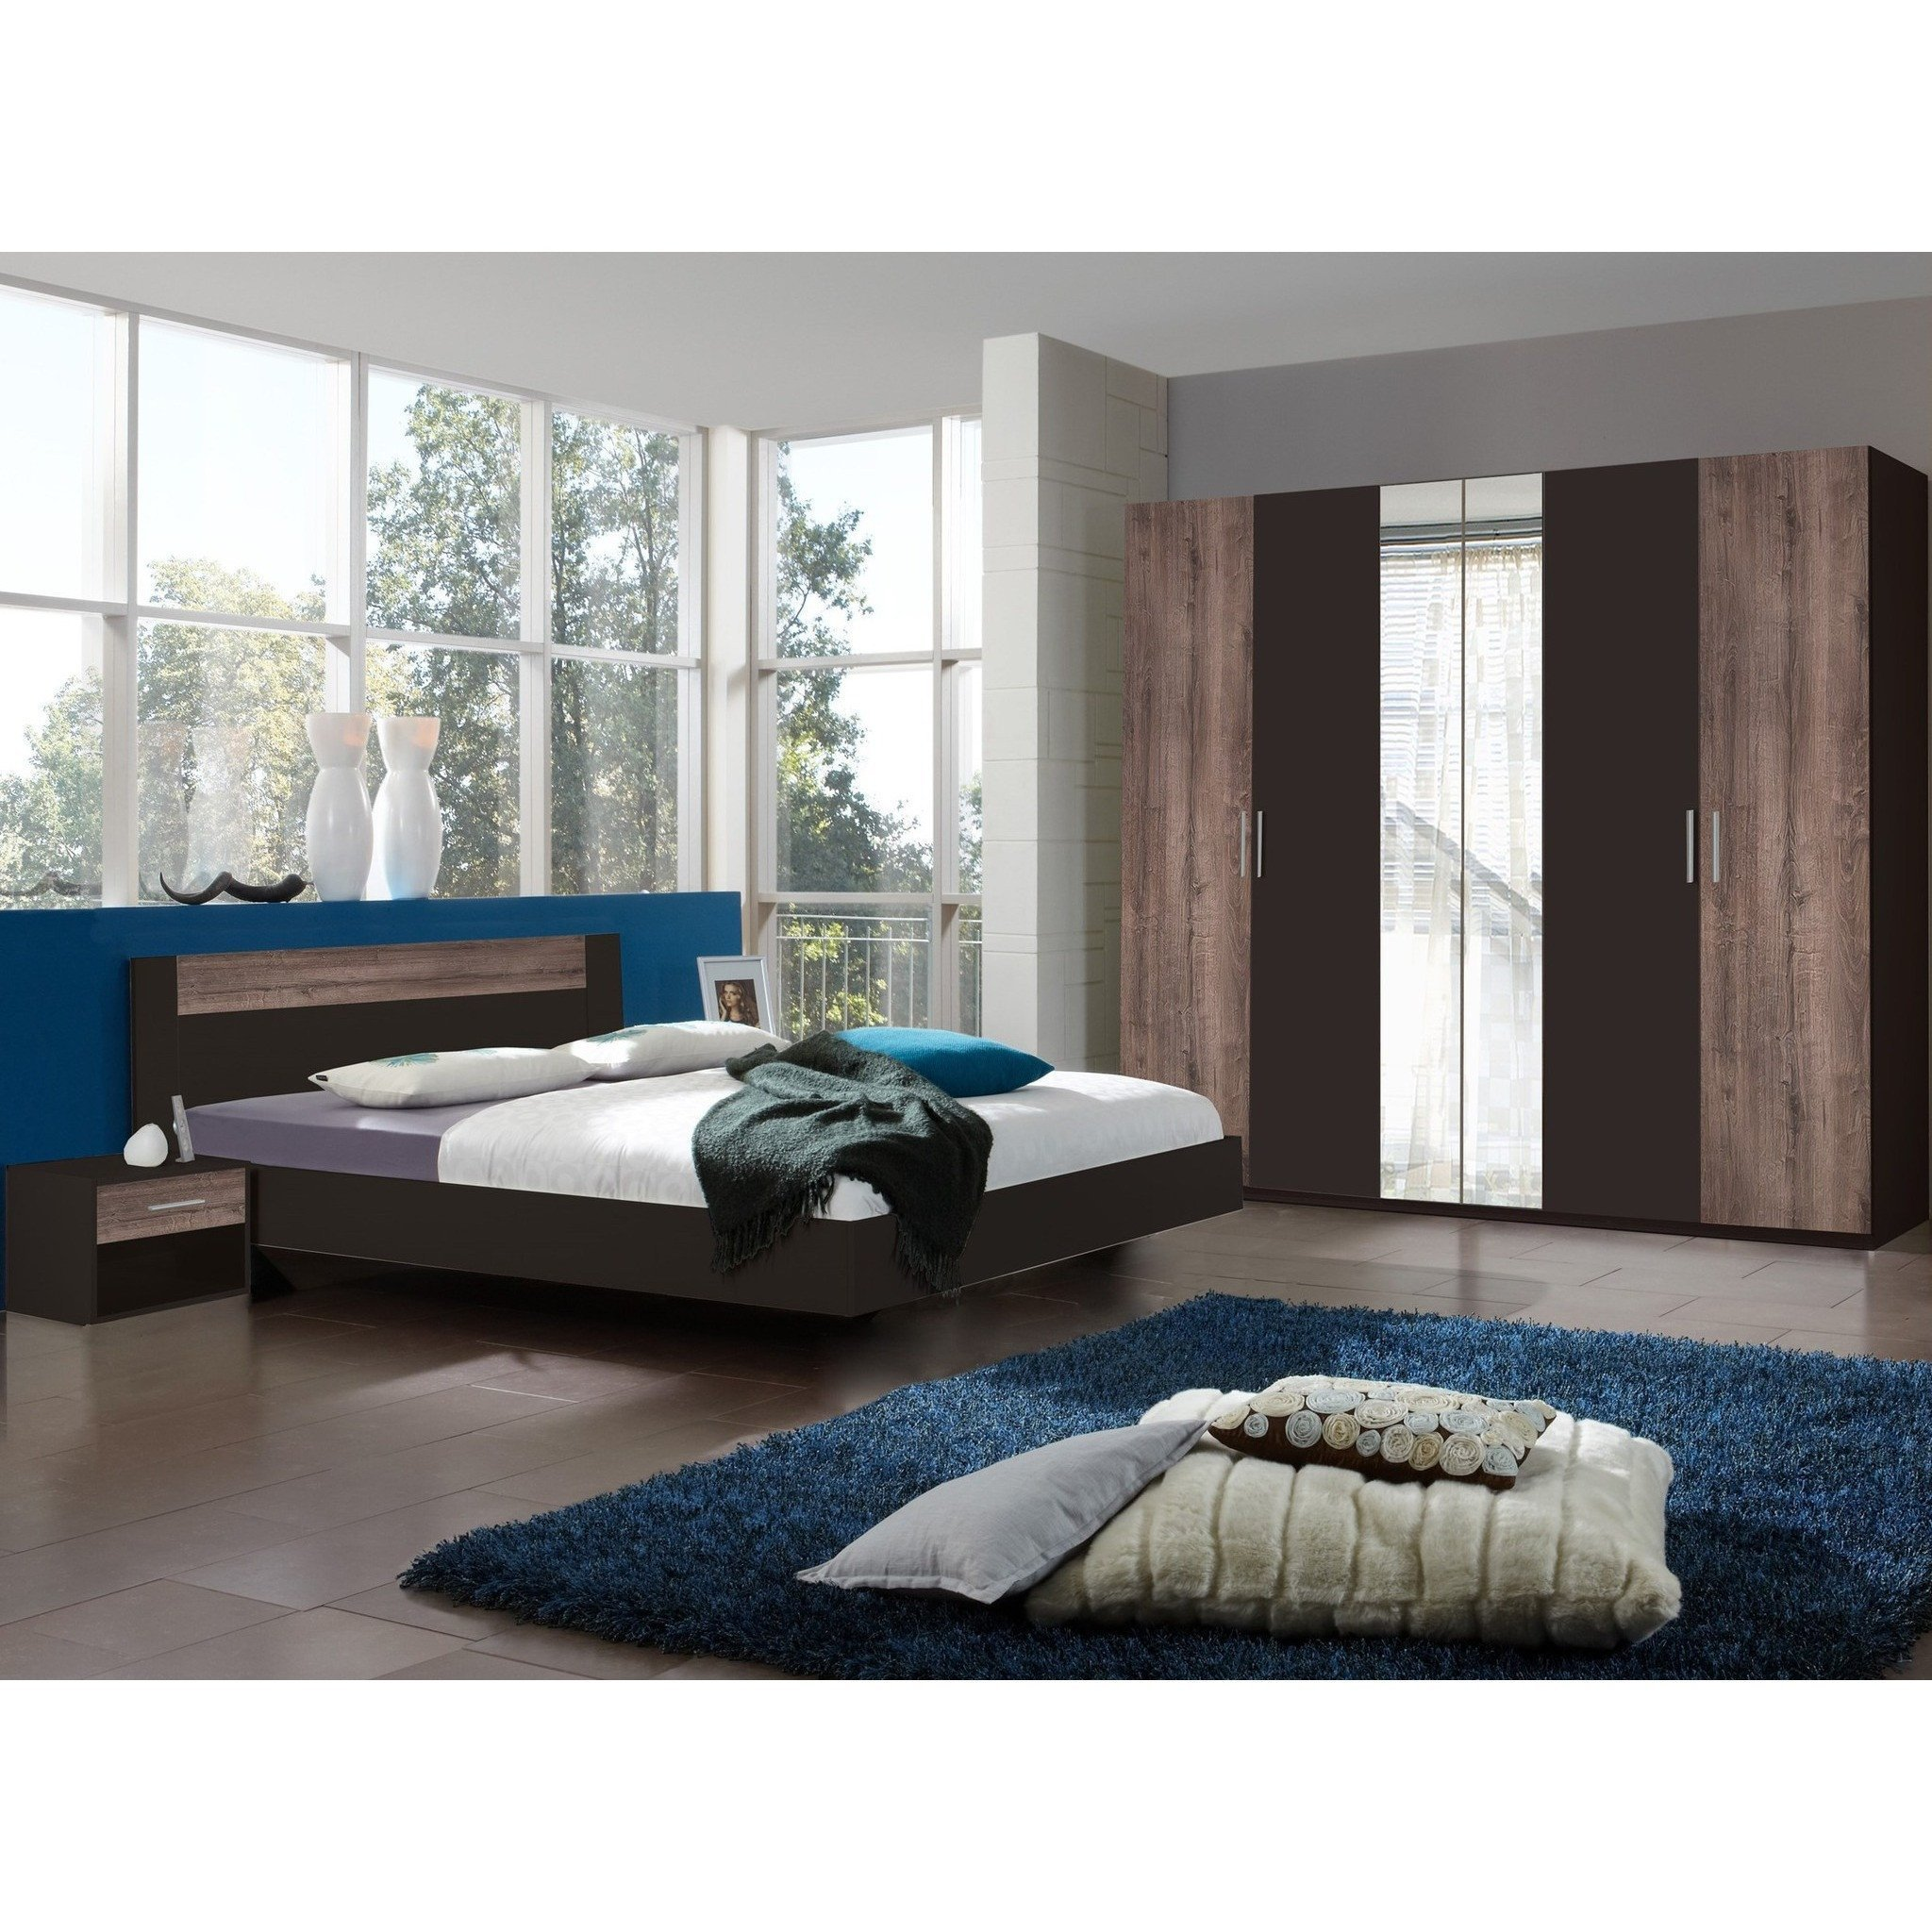 Best Qmax Liana Range German Made Bedroom Furniture Lava Muddy Oak Fi – Freedom Homestore With Pictures